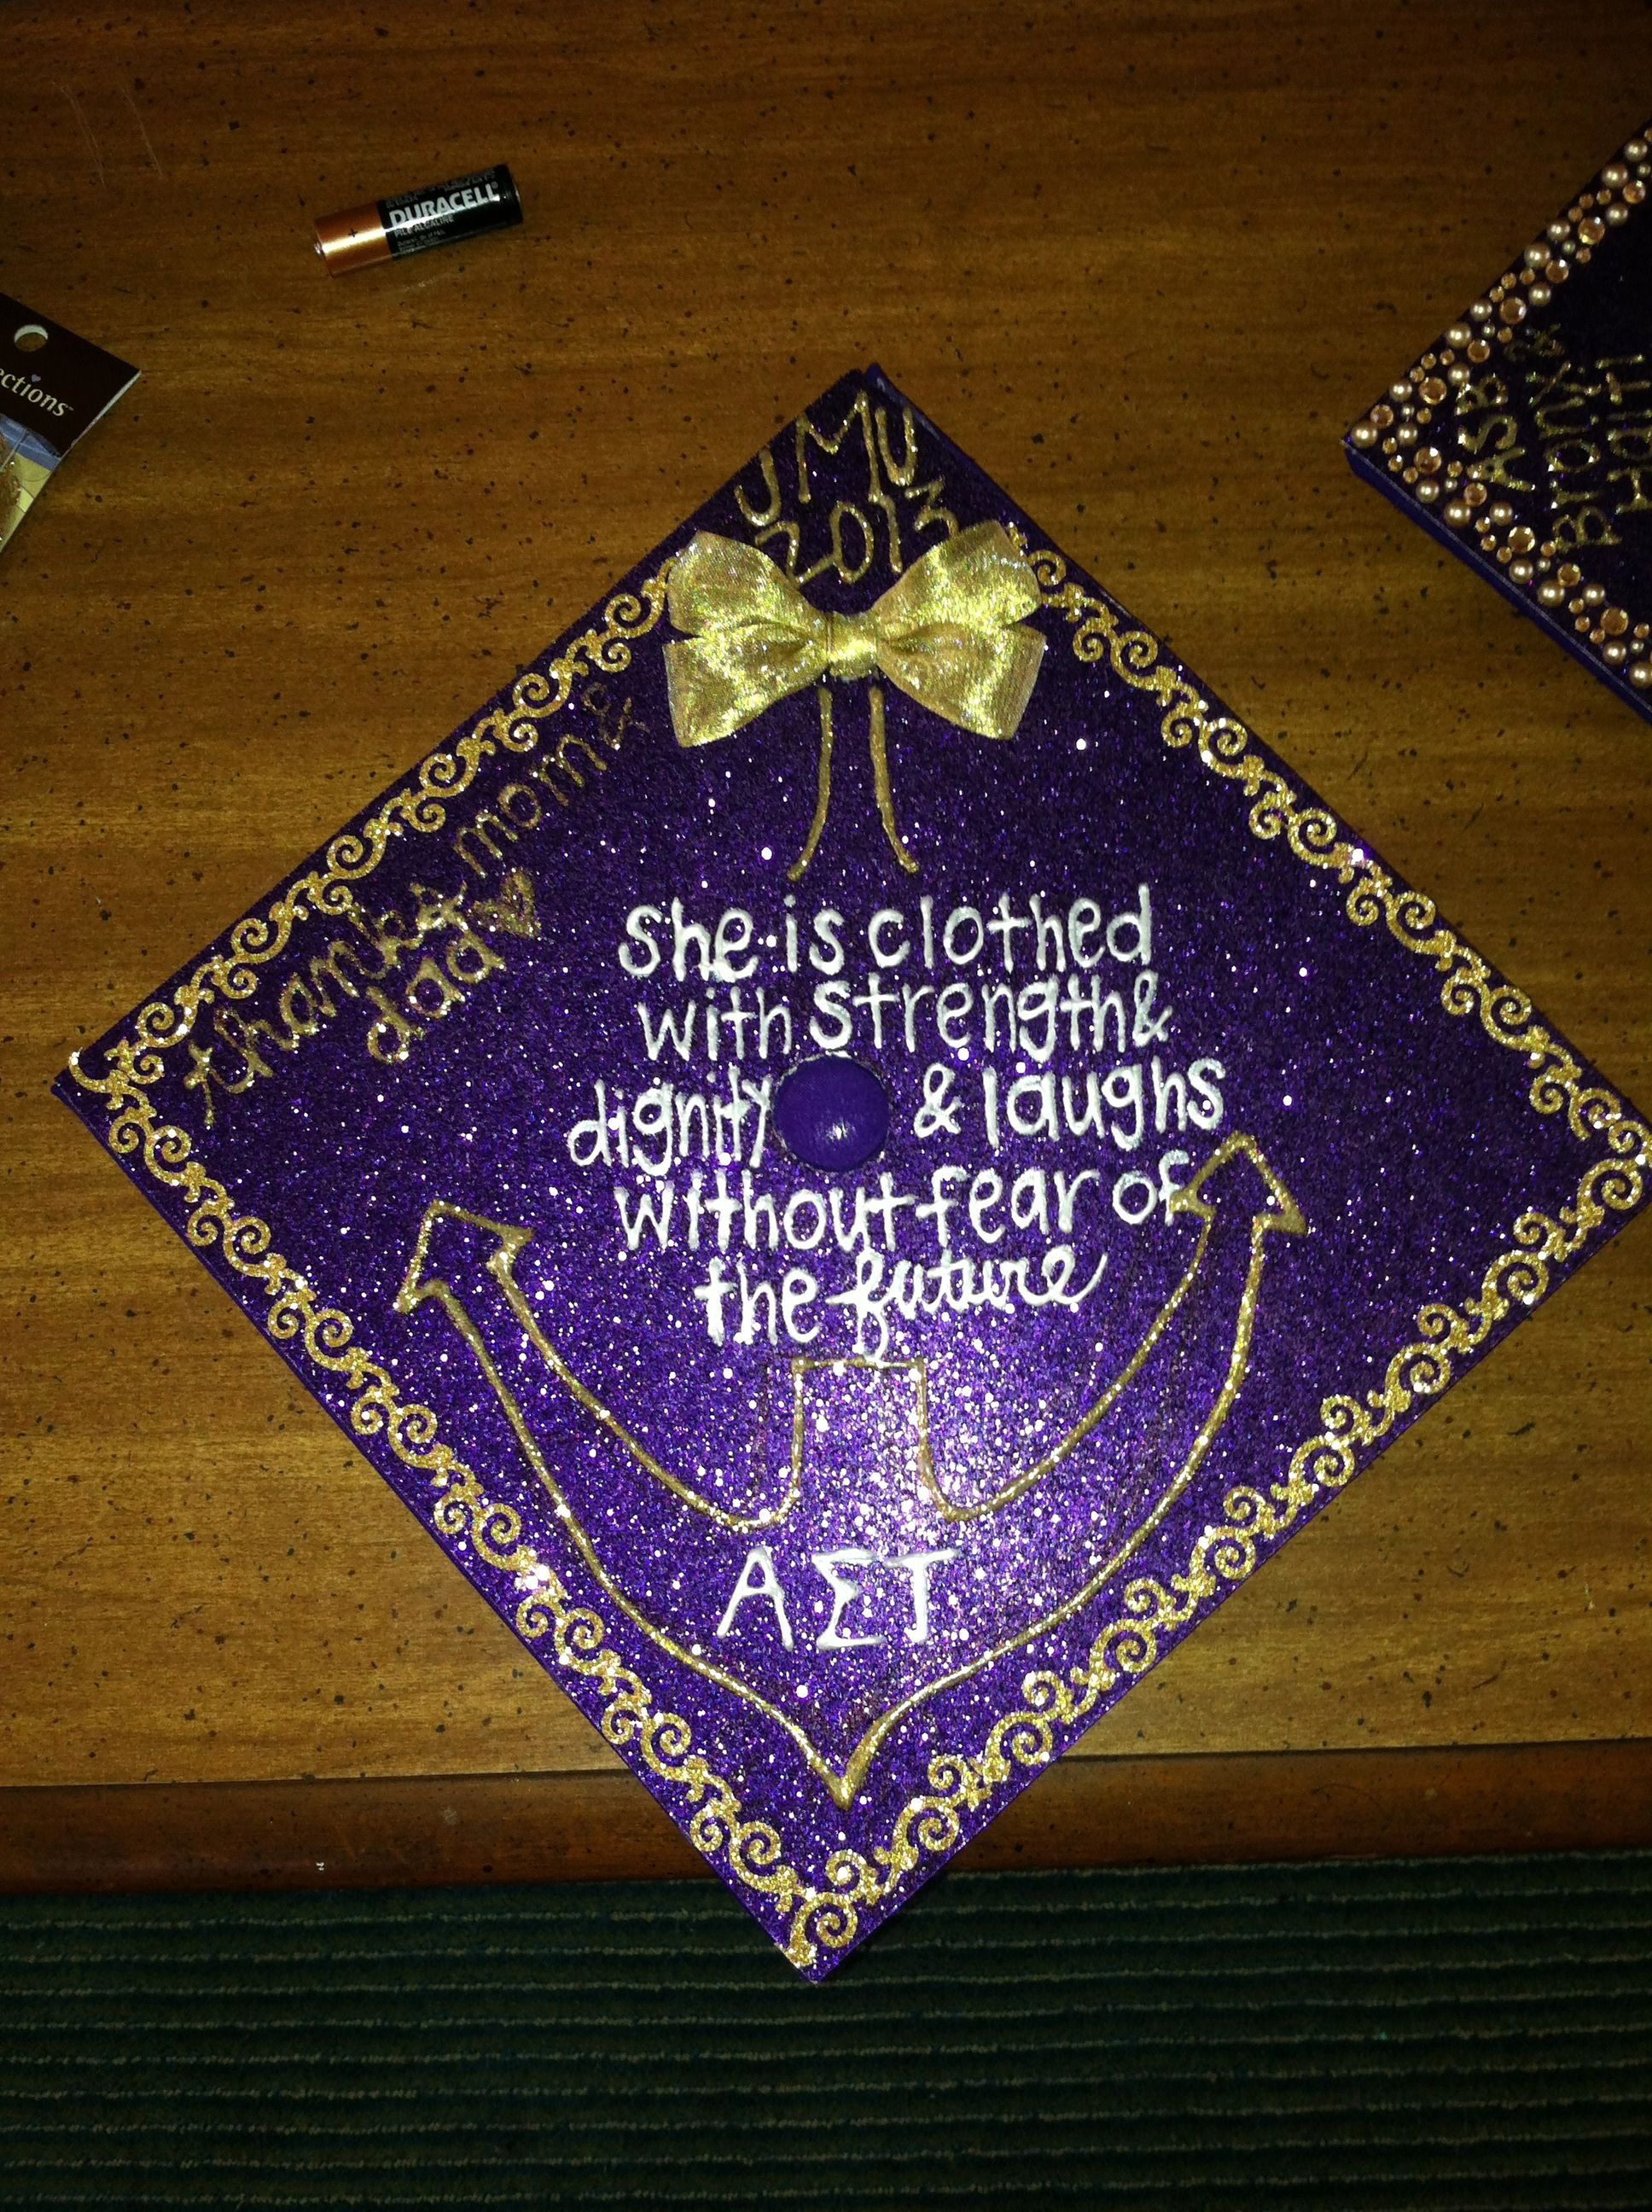 AST JMT decorated graduation cap grad hat mencement purple